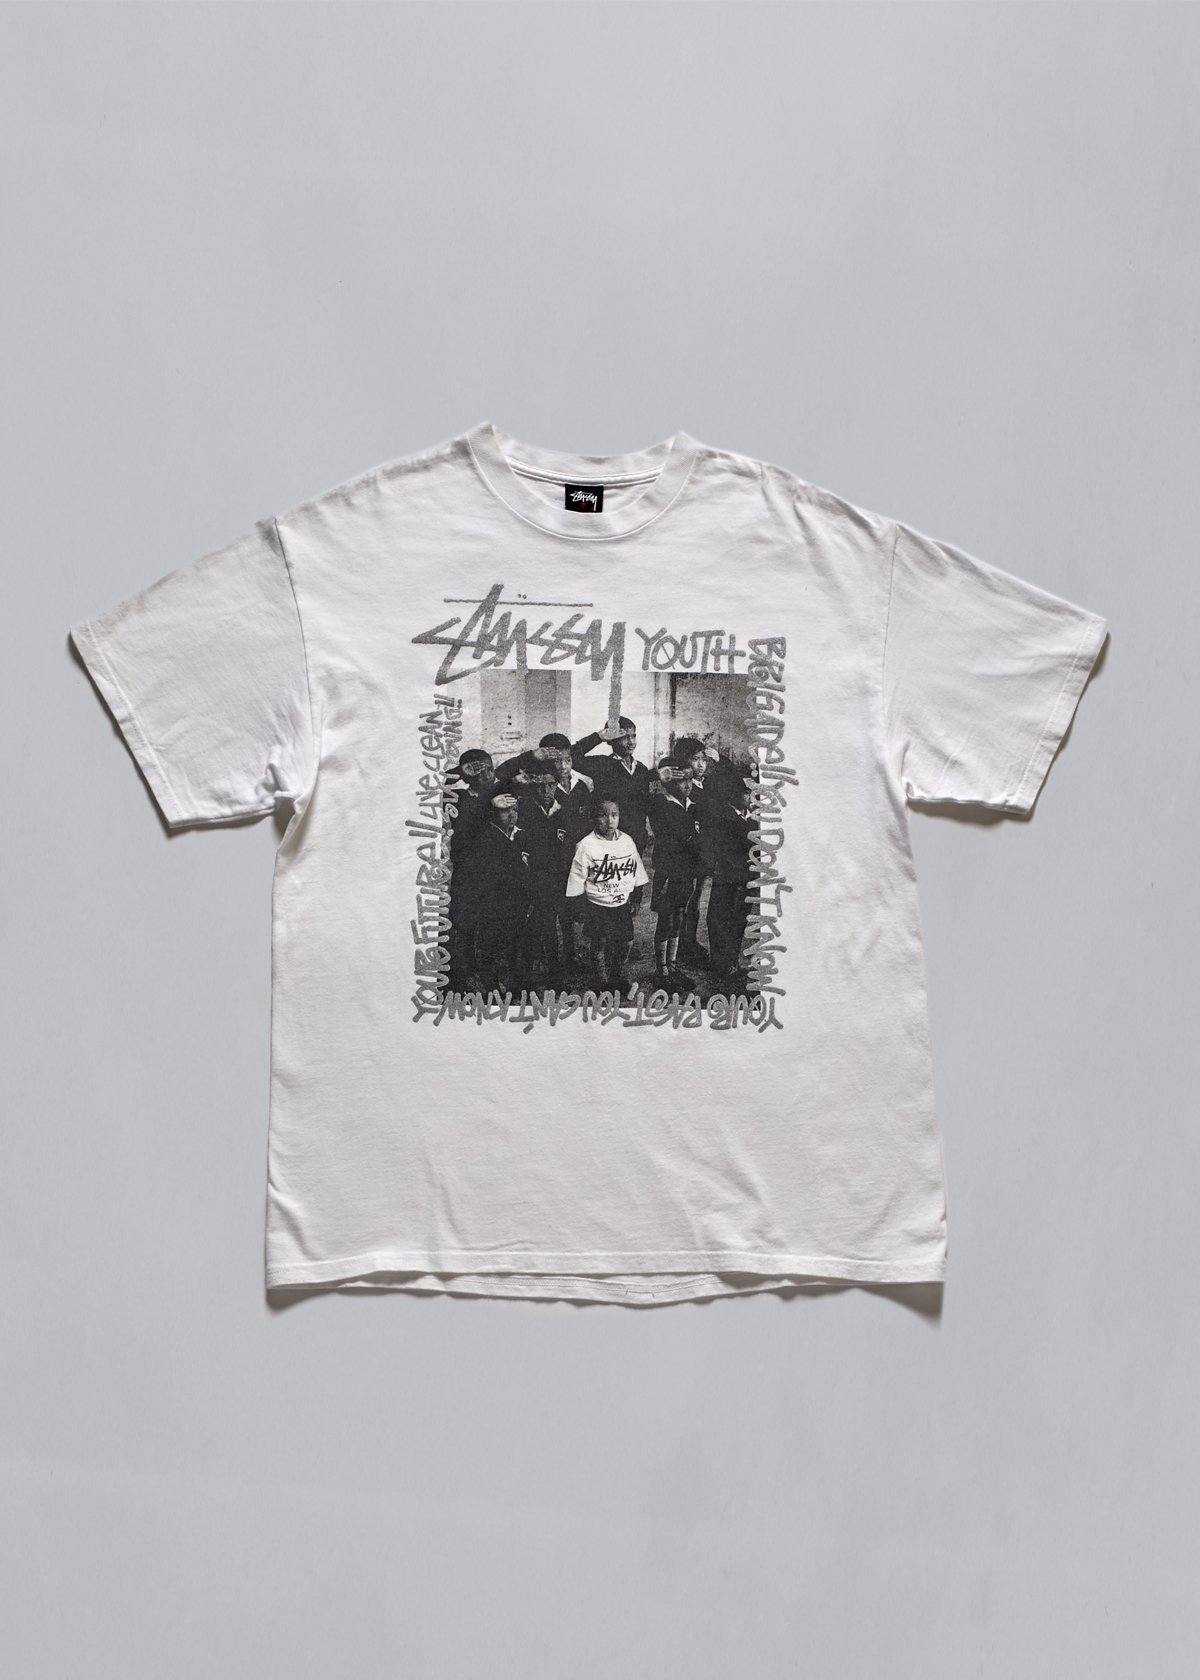 STUSSY archives available now